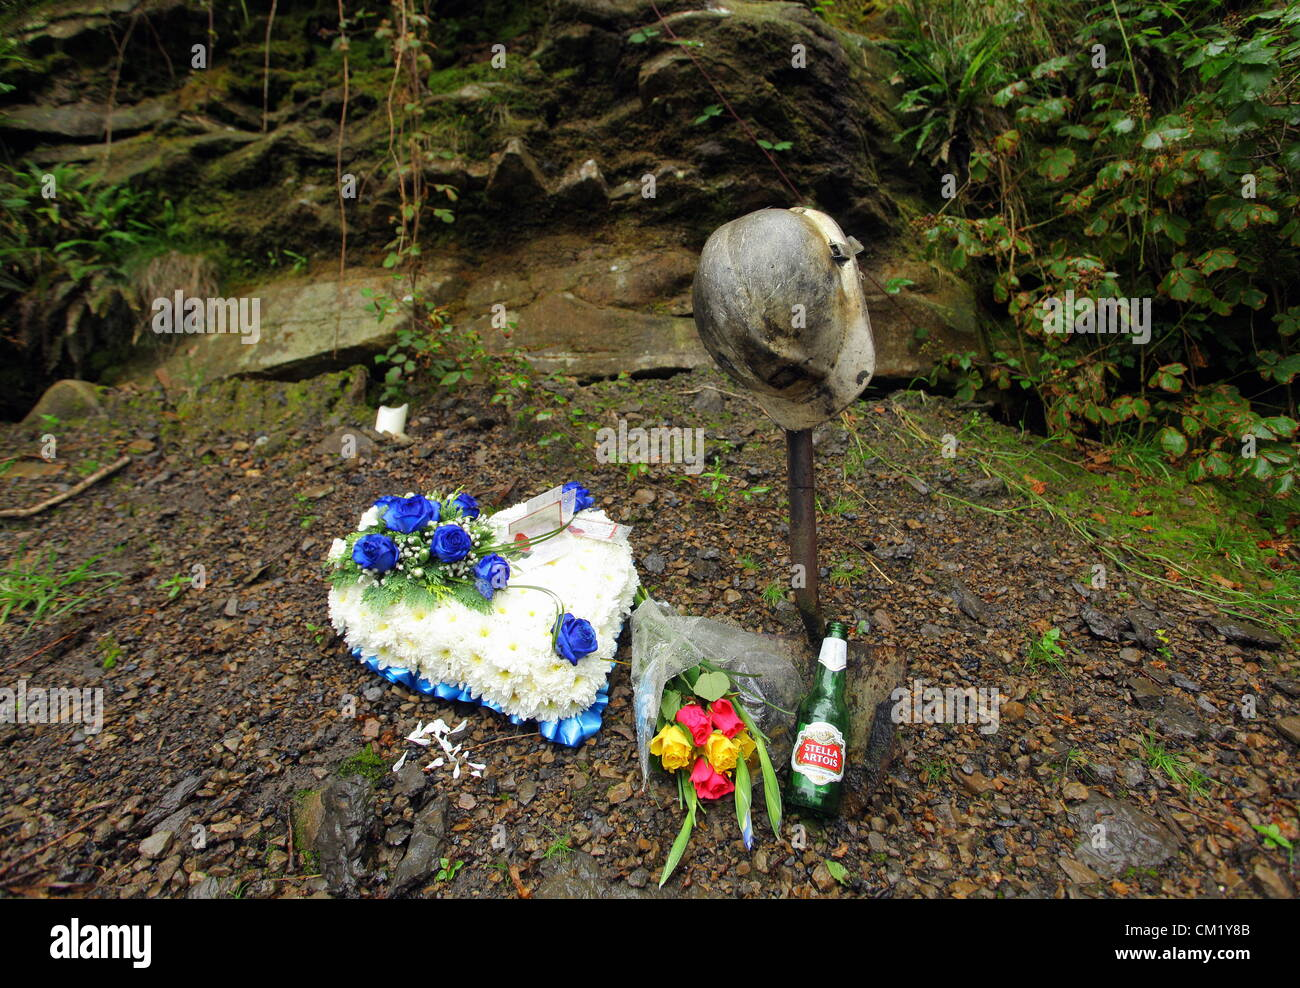 Cilybebyll, South Wales, UK. Sunday 16 September 2012. Floral tributes left near Gleision mine in Cilybebyll, near - Stock Image